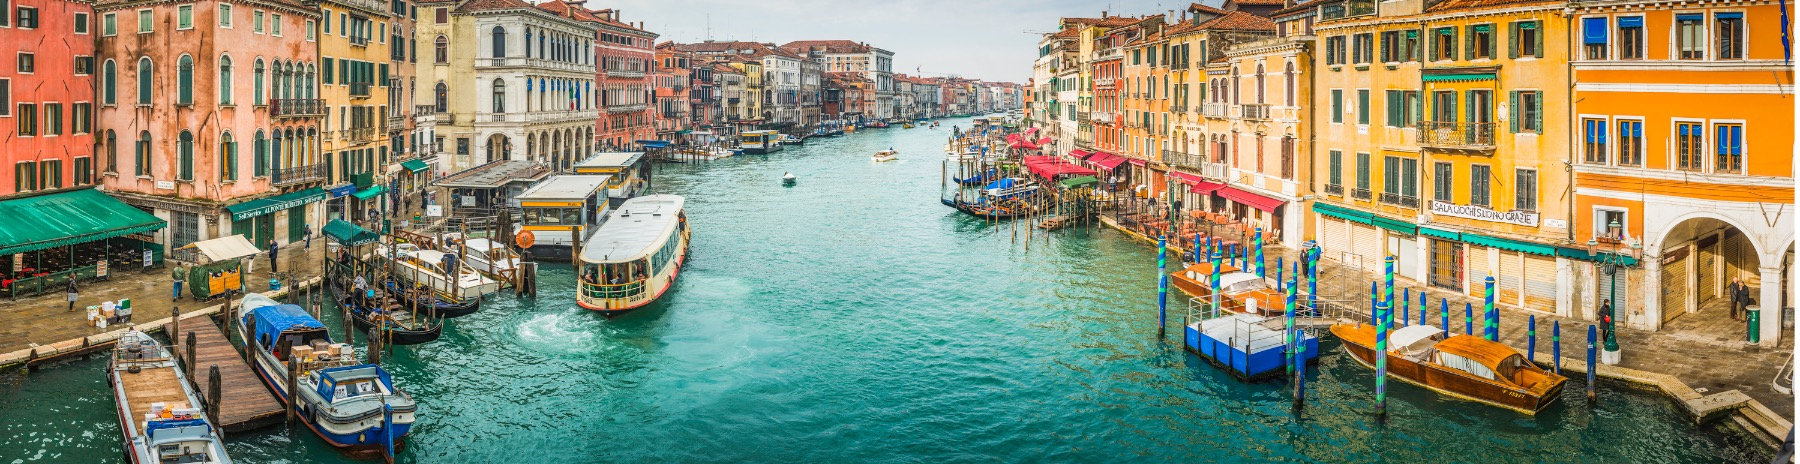 15 nights escape to Italy